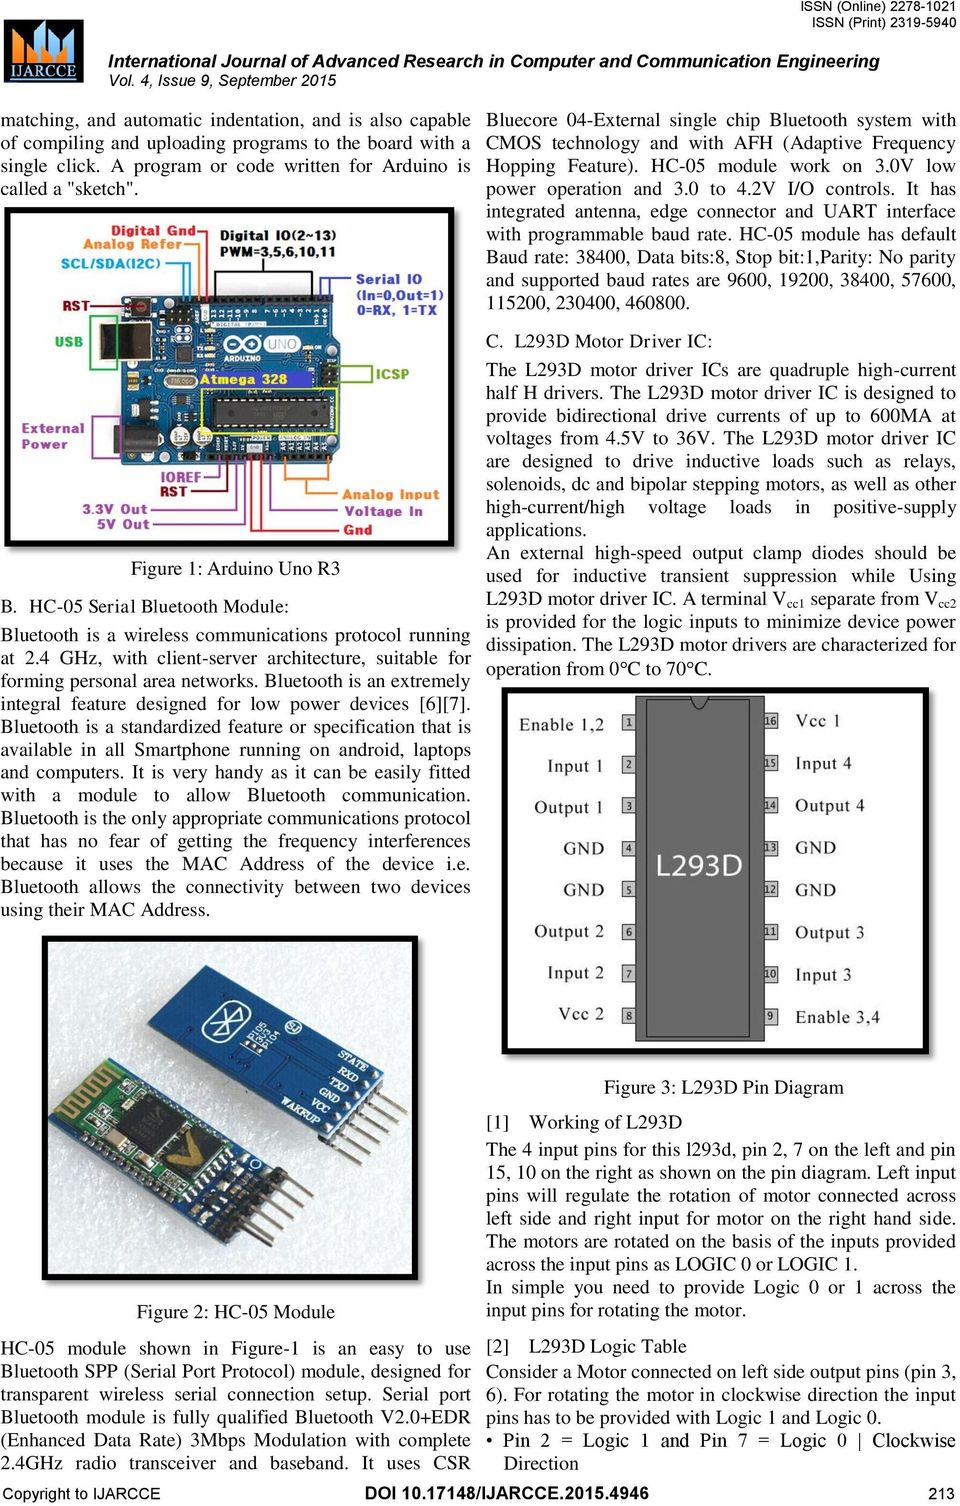 Three Way Controlled Android Smartphone Based Robotic Vehicle Via L293d Pin Diagram 4 Ghz With Client Server Architecture Suitable For Forming Personal Area Networks